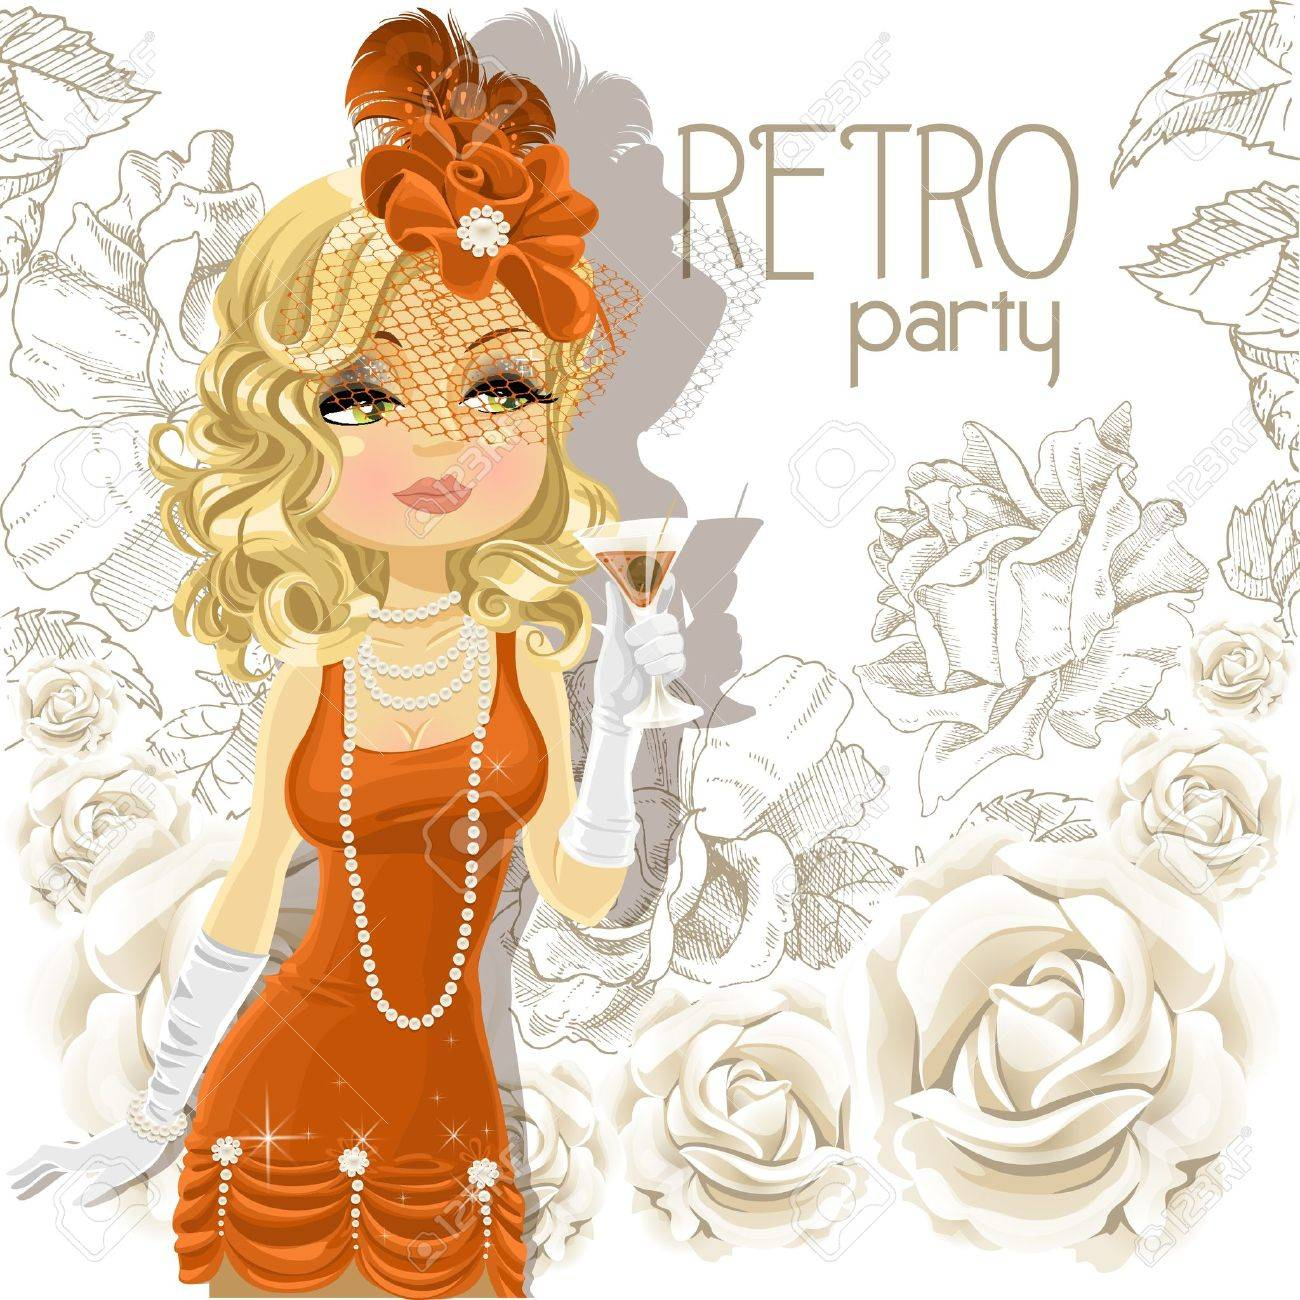 Cute woman with goblet on Retro party card Stock Vector - 16916115